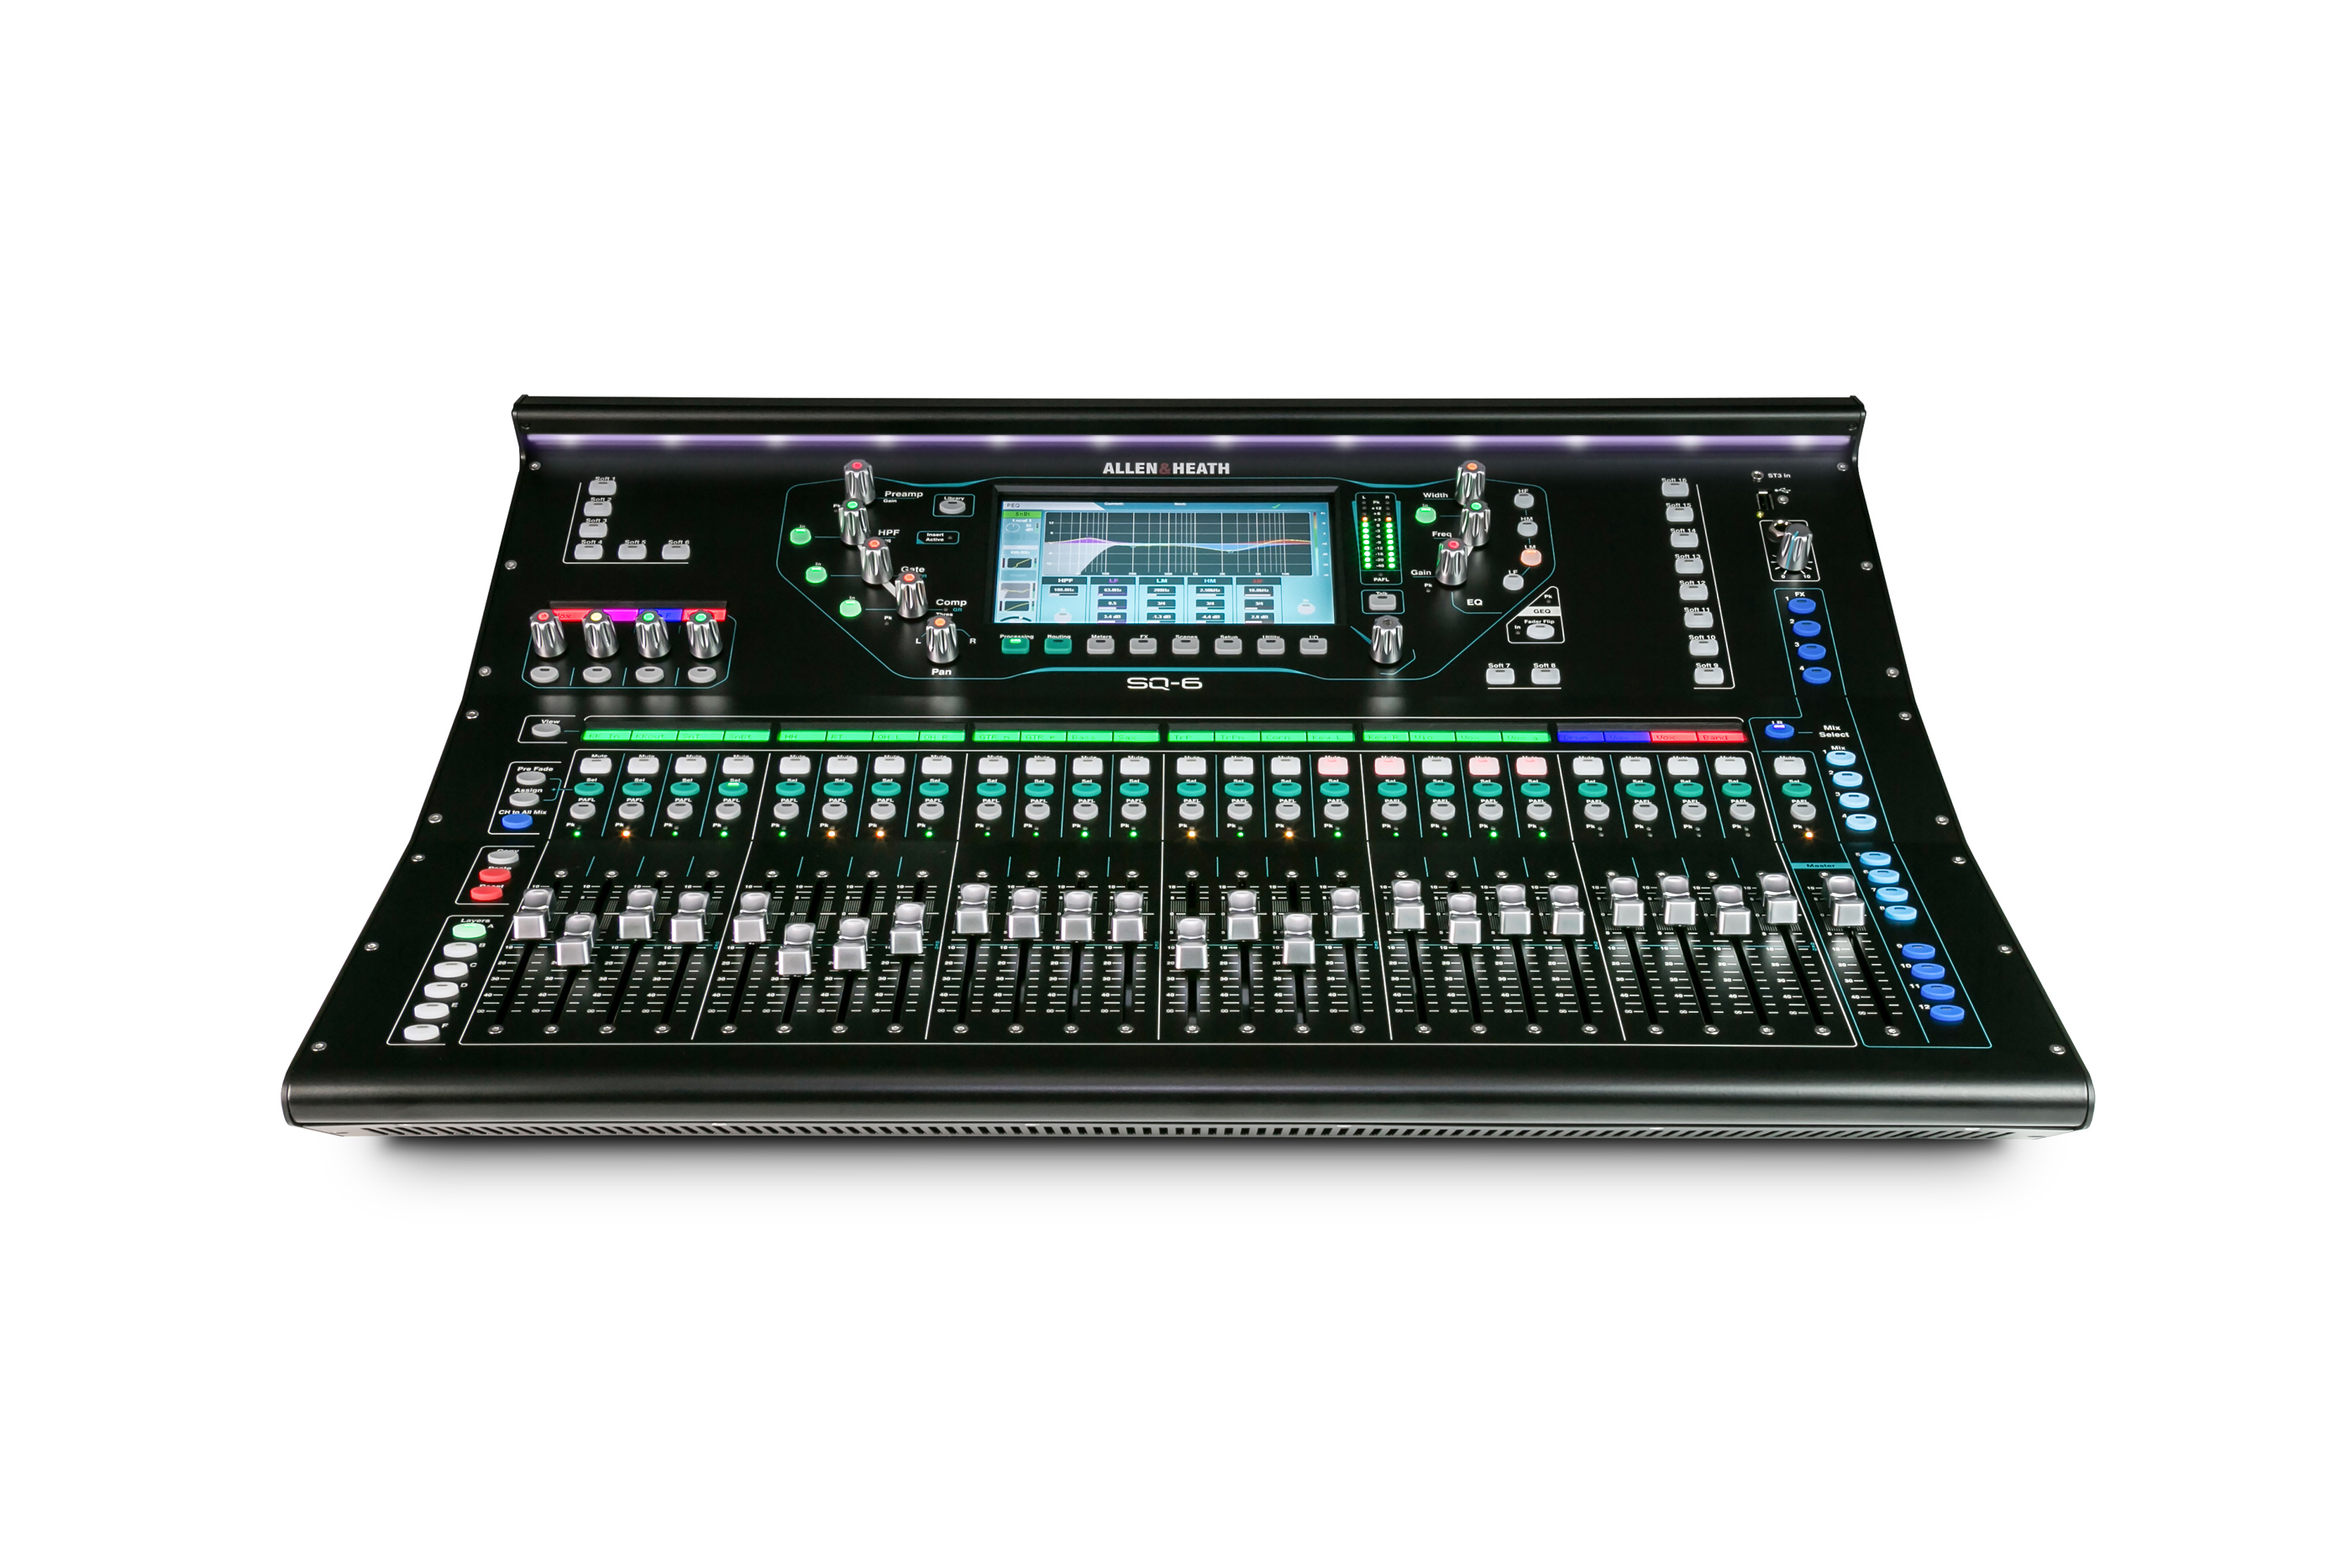 Allen & Heath SQ-6 48 Channel Digital Audio Mixer